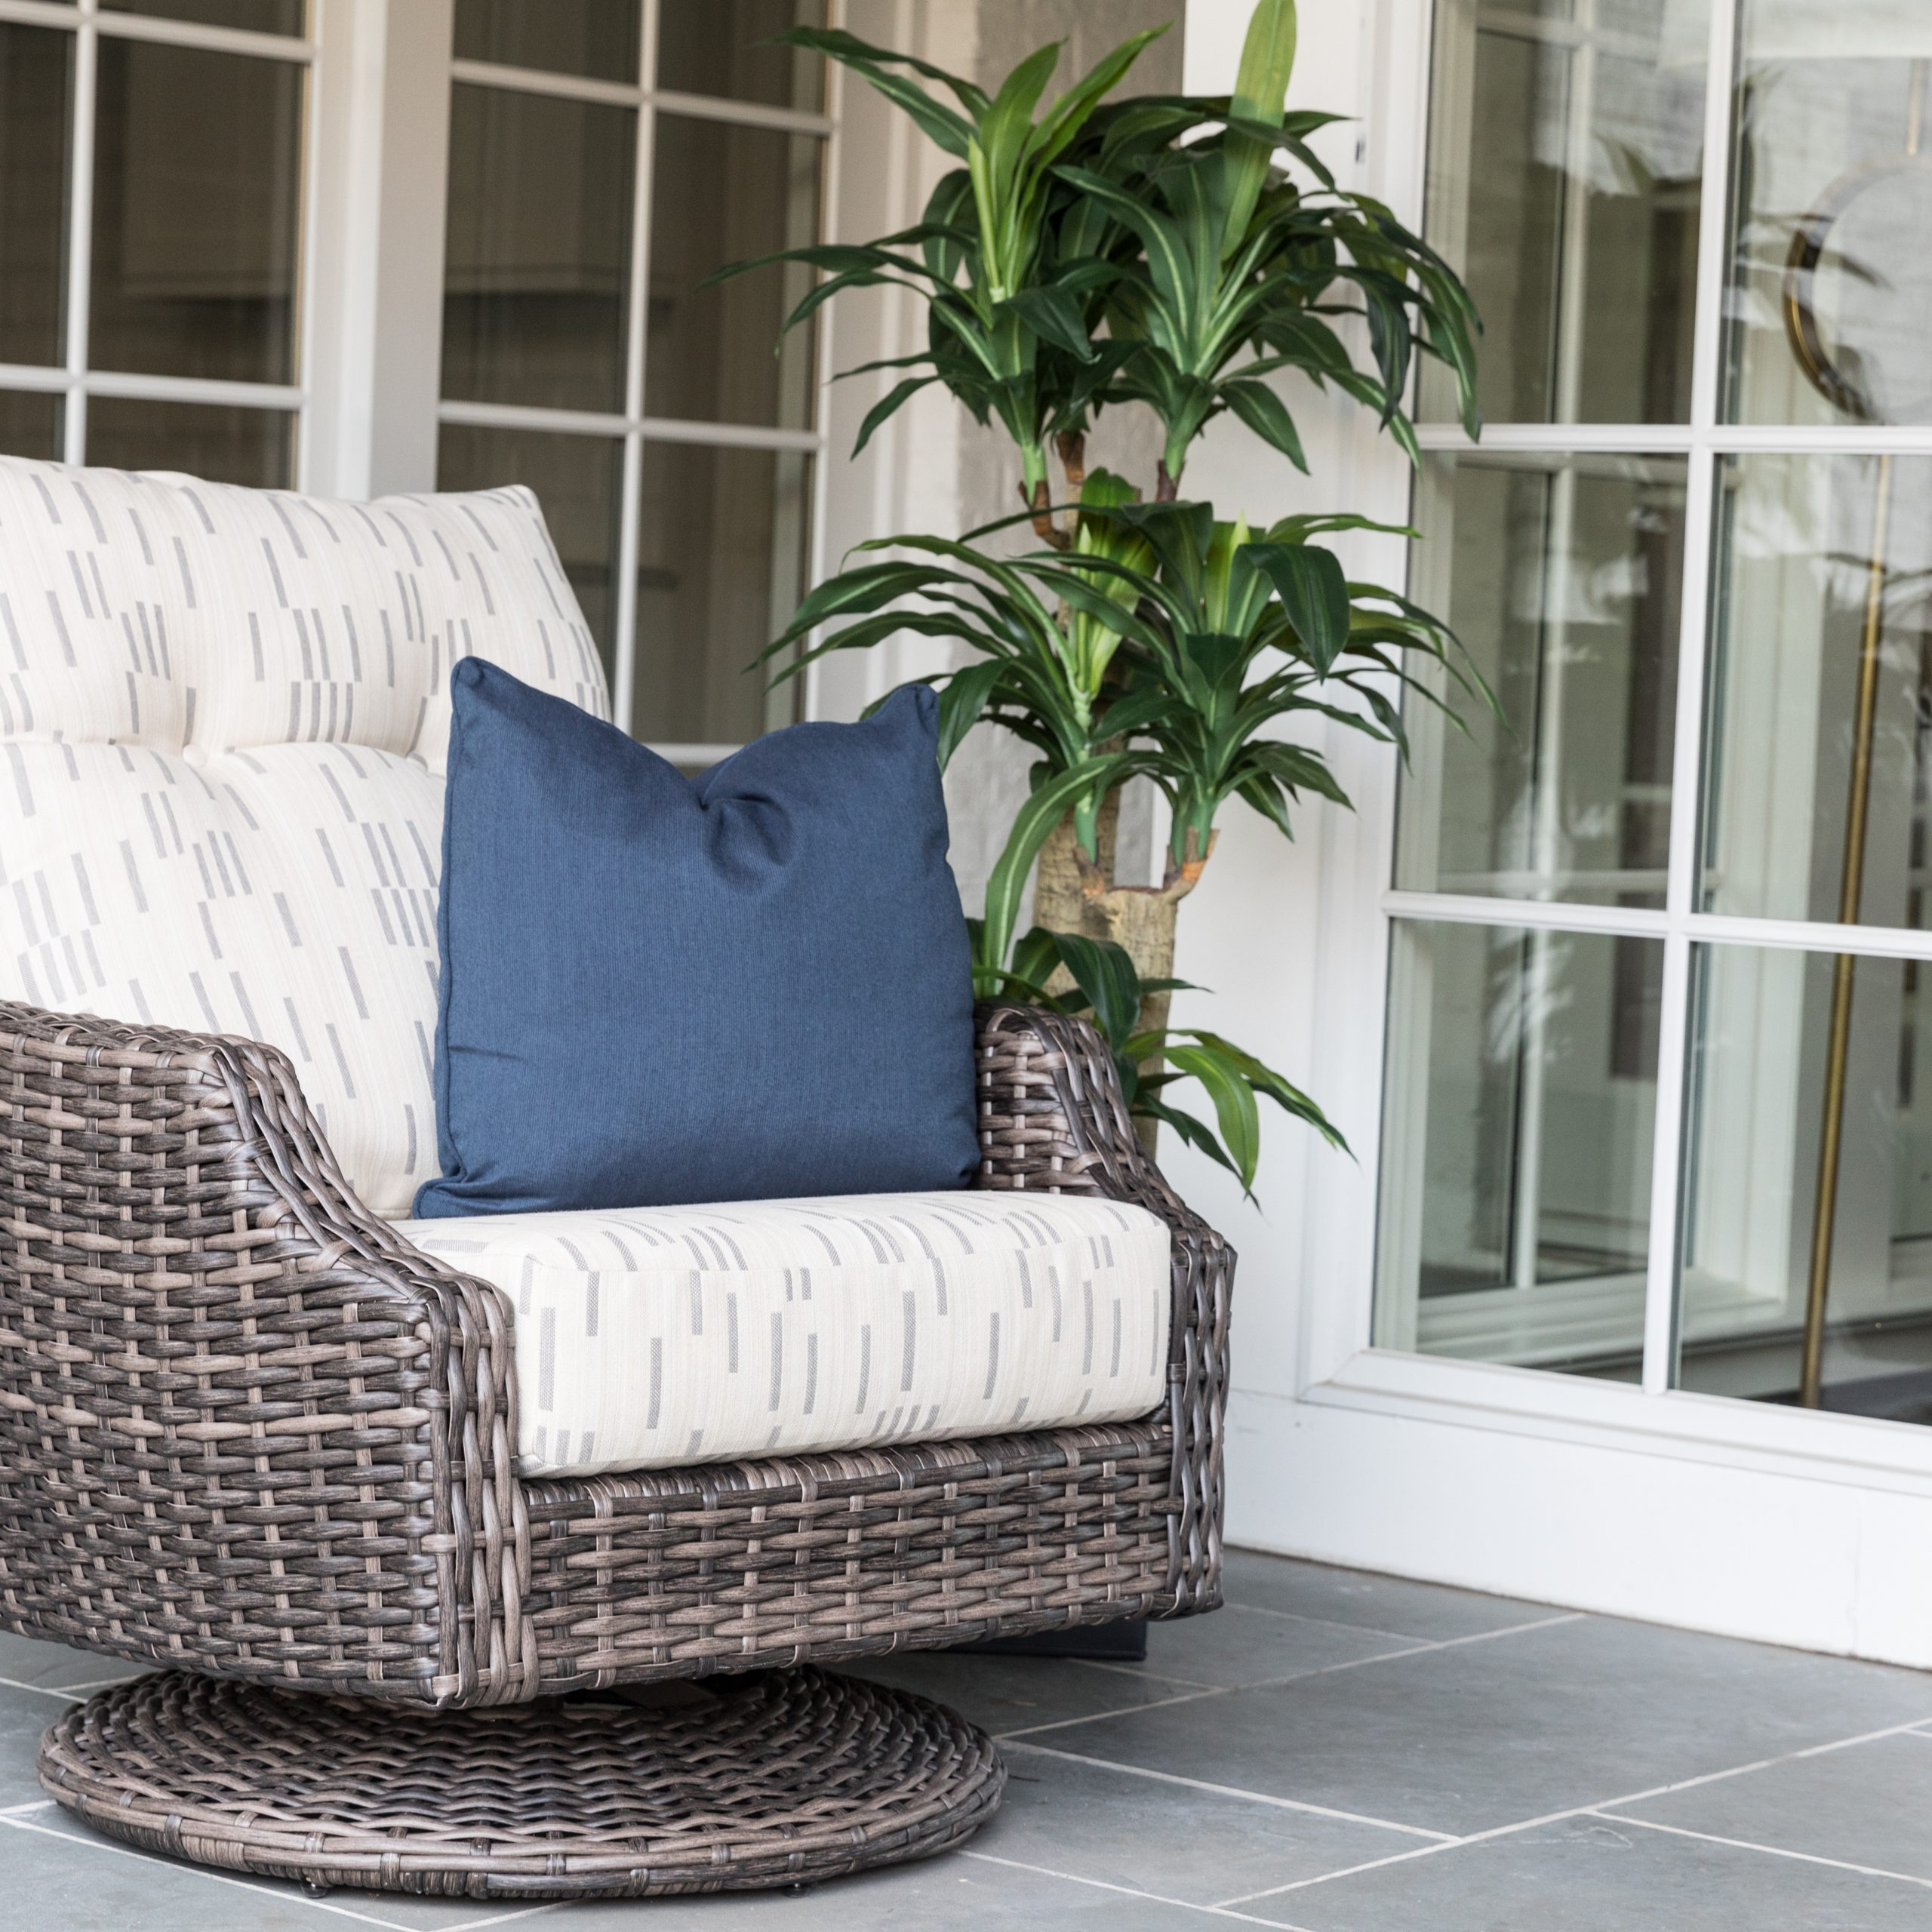 Item | Lloyd Flanders – Premium Outdoor Furniture In All For Woven High Back Swivel Chairs (Image 11 of 25)